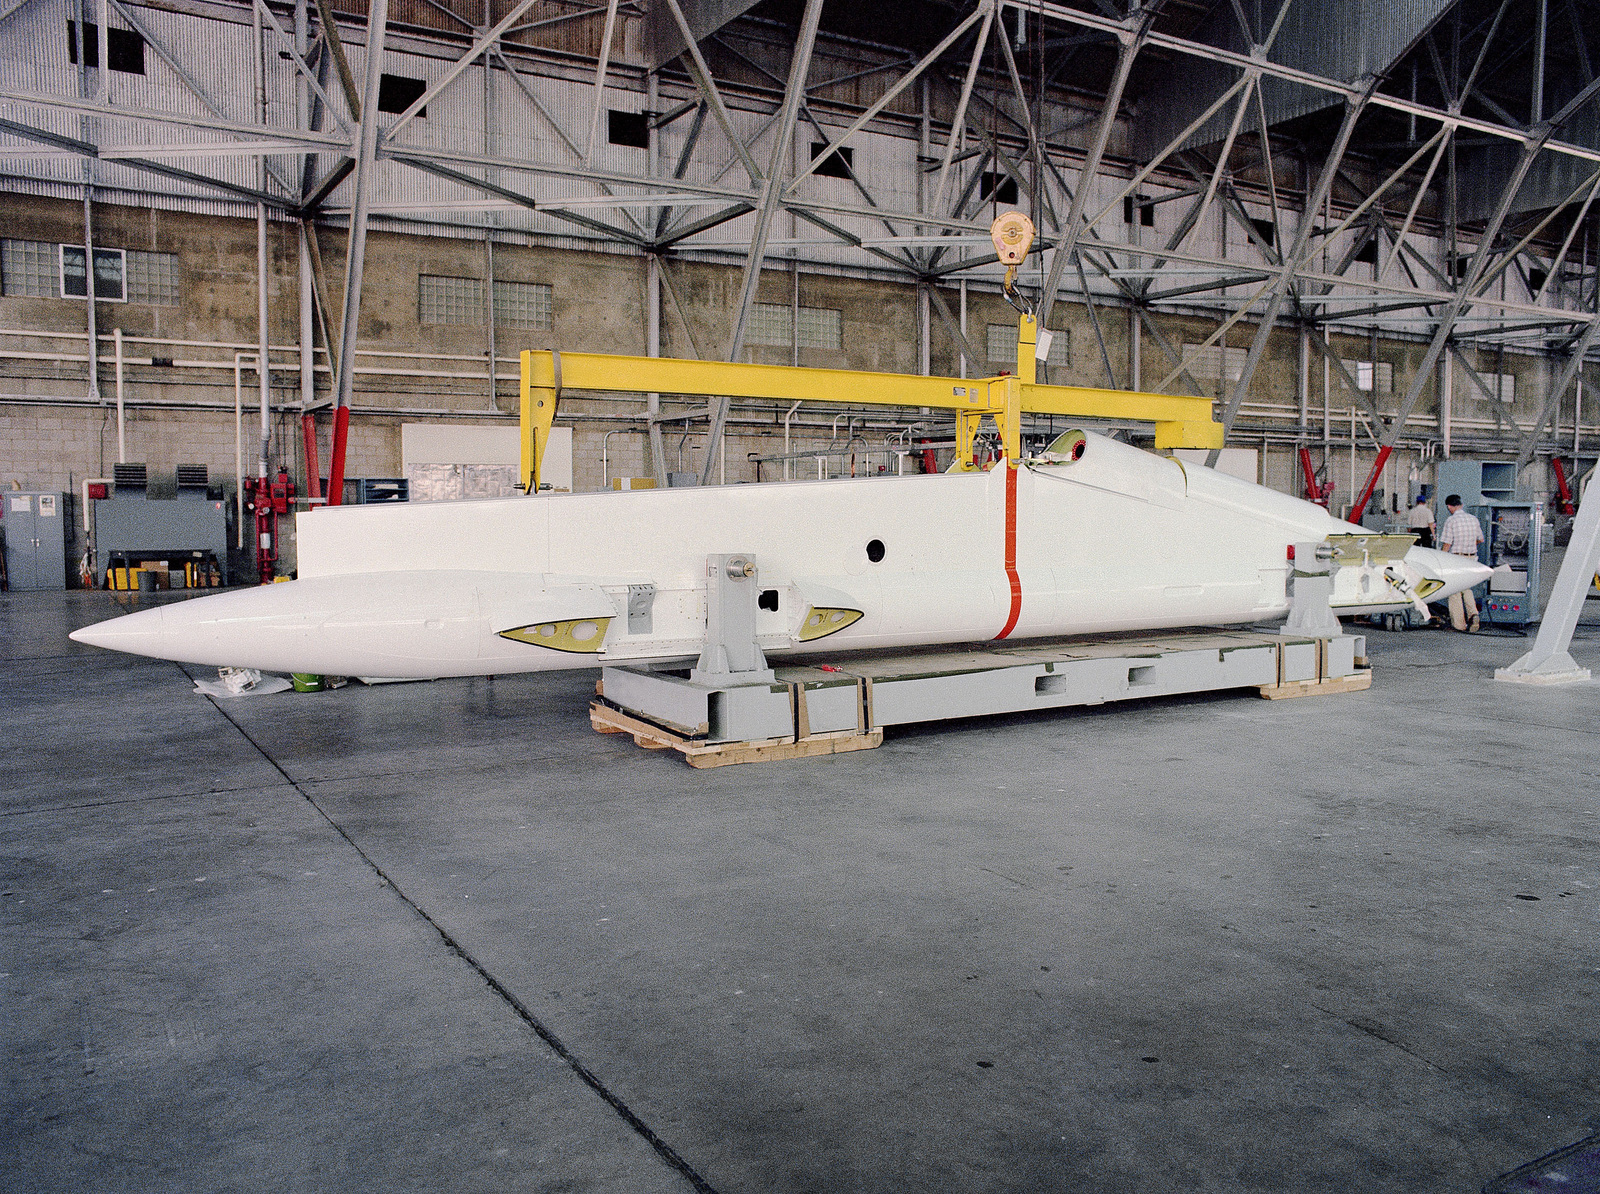 Side view of a B-52 Stratofortress aircraft wing pylon in a hangar